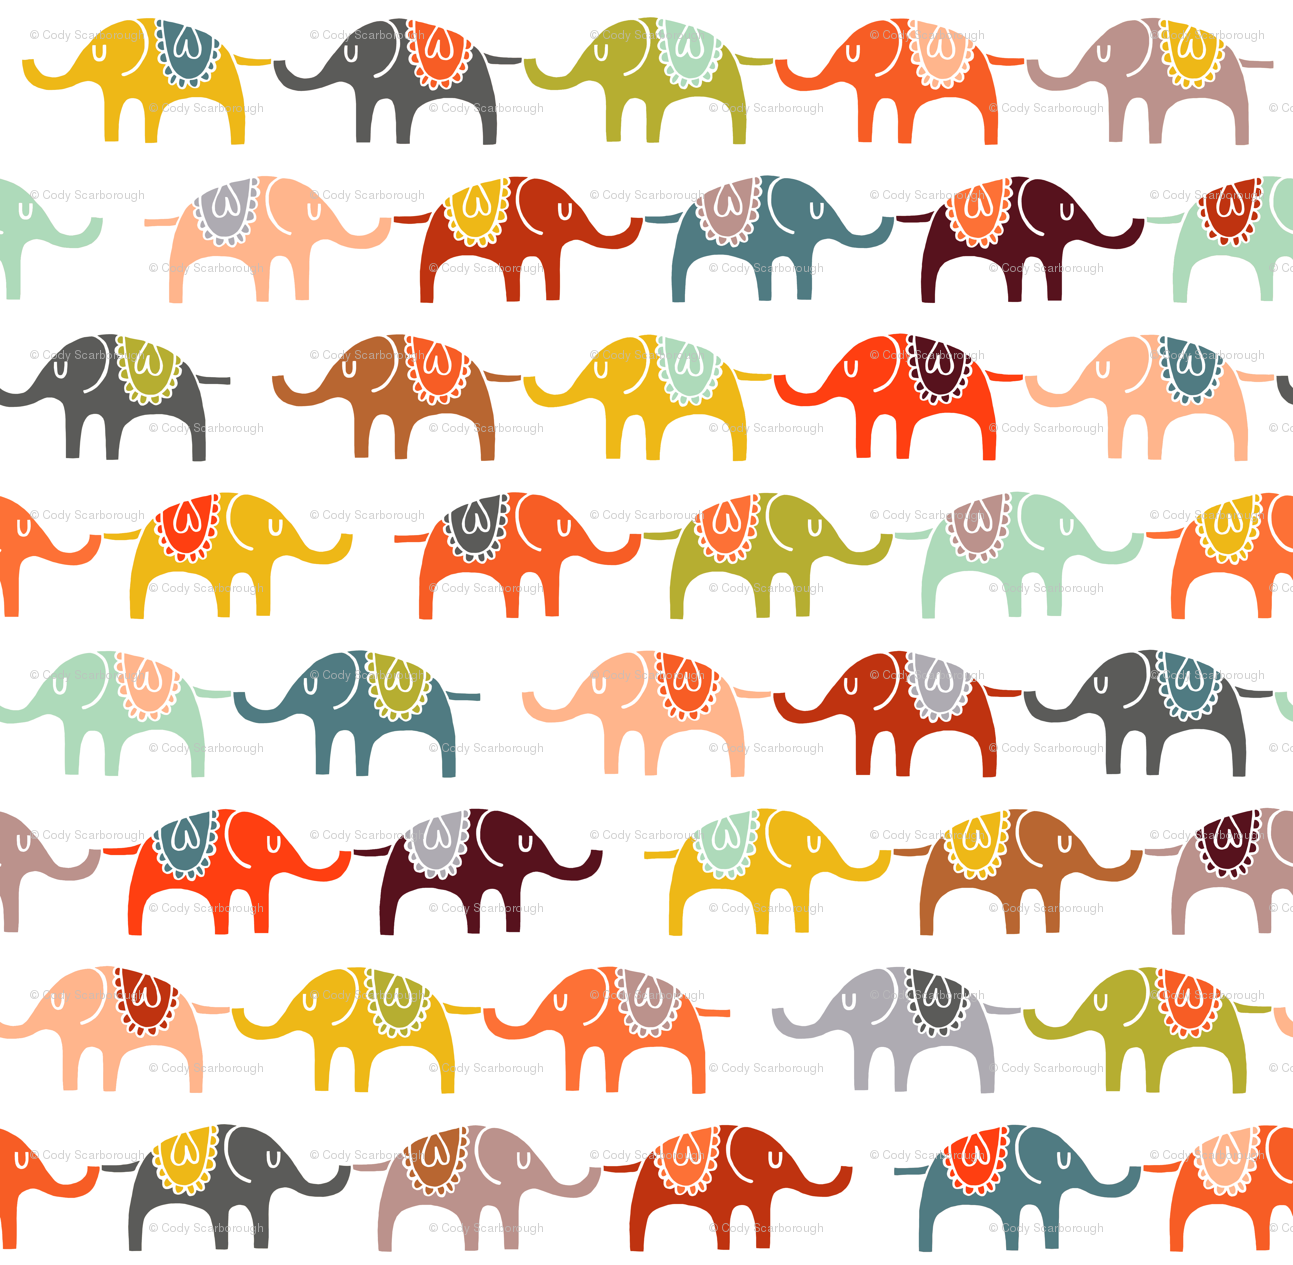 Trippy Elephant Backgrounds Elephant marchElephant Design Wallpaper